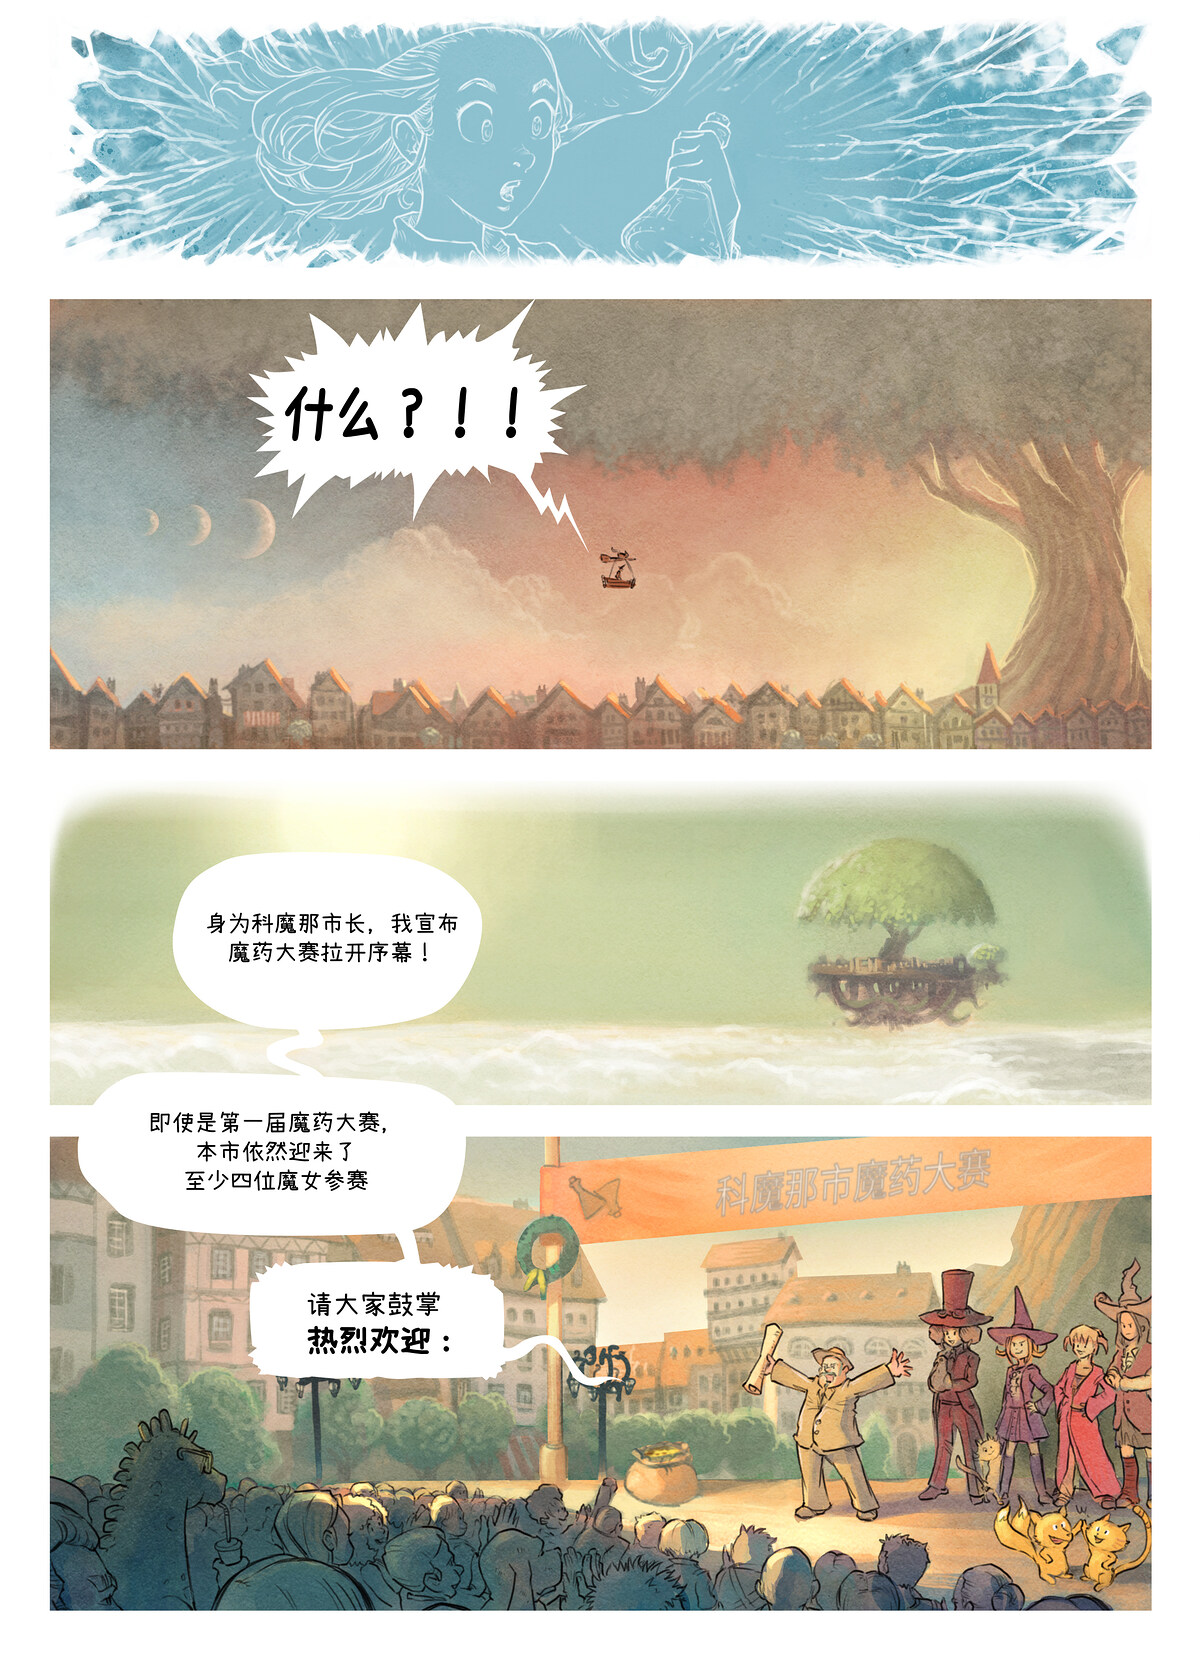 A webcomic page of Pepper&Carrot, 漫画全集 6 [cn], 页面 3